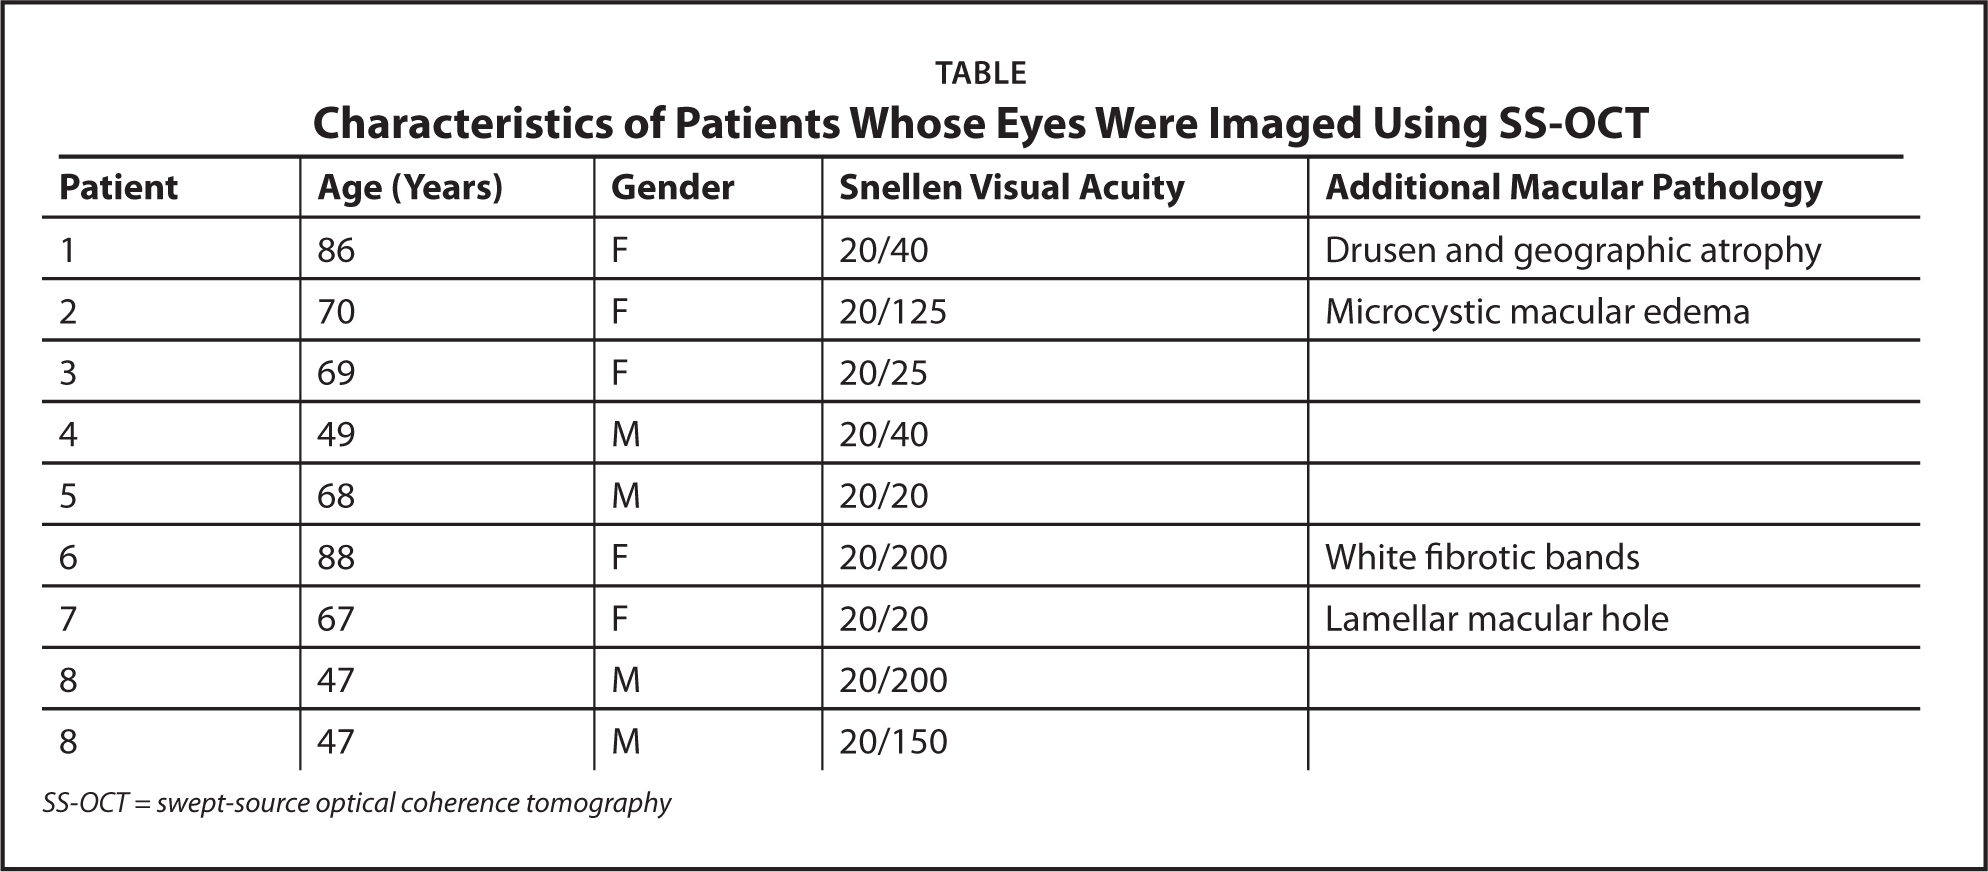 Characteristics of Patients Whose Eyes Were Imaged Using SS-OCT